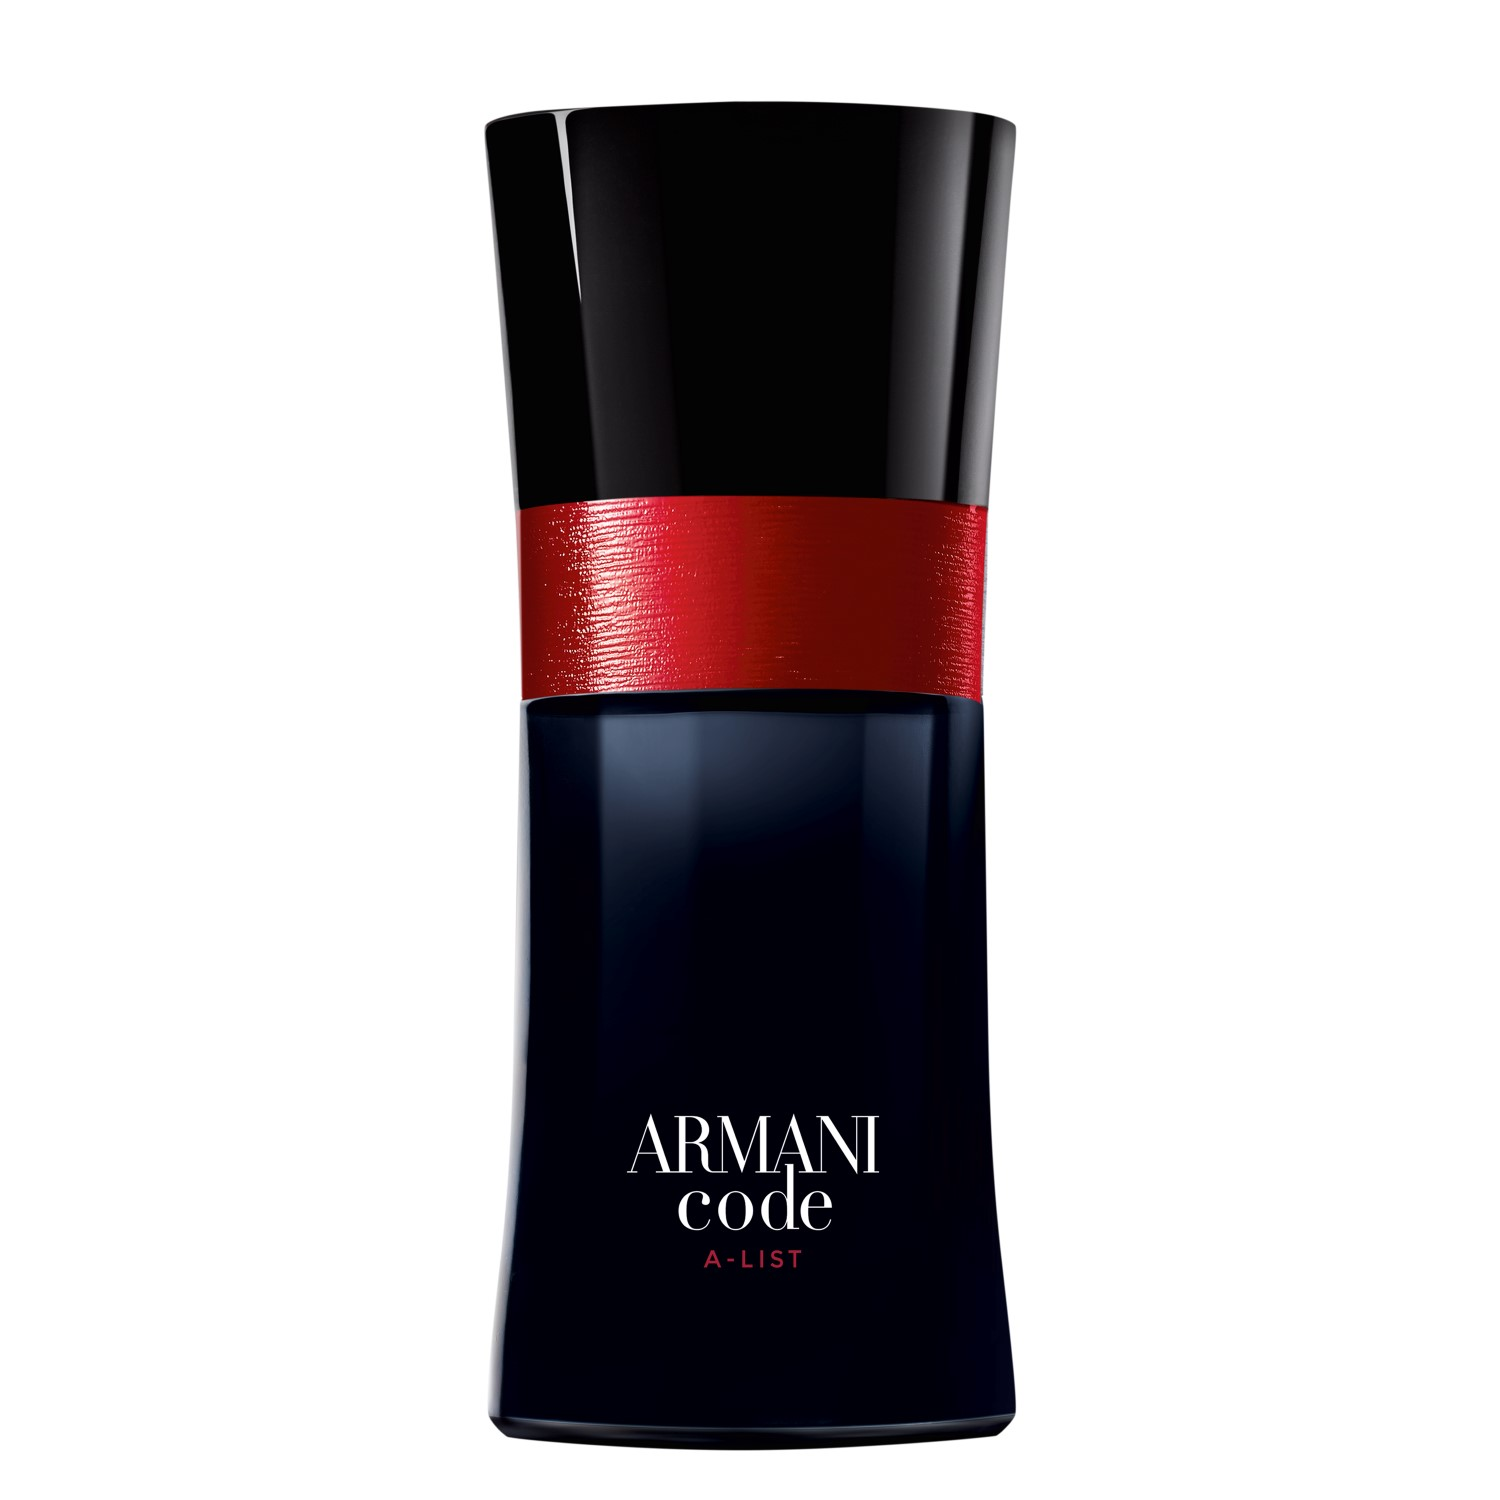 Armani Code A-list Edt 50 ml